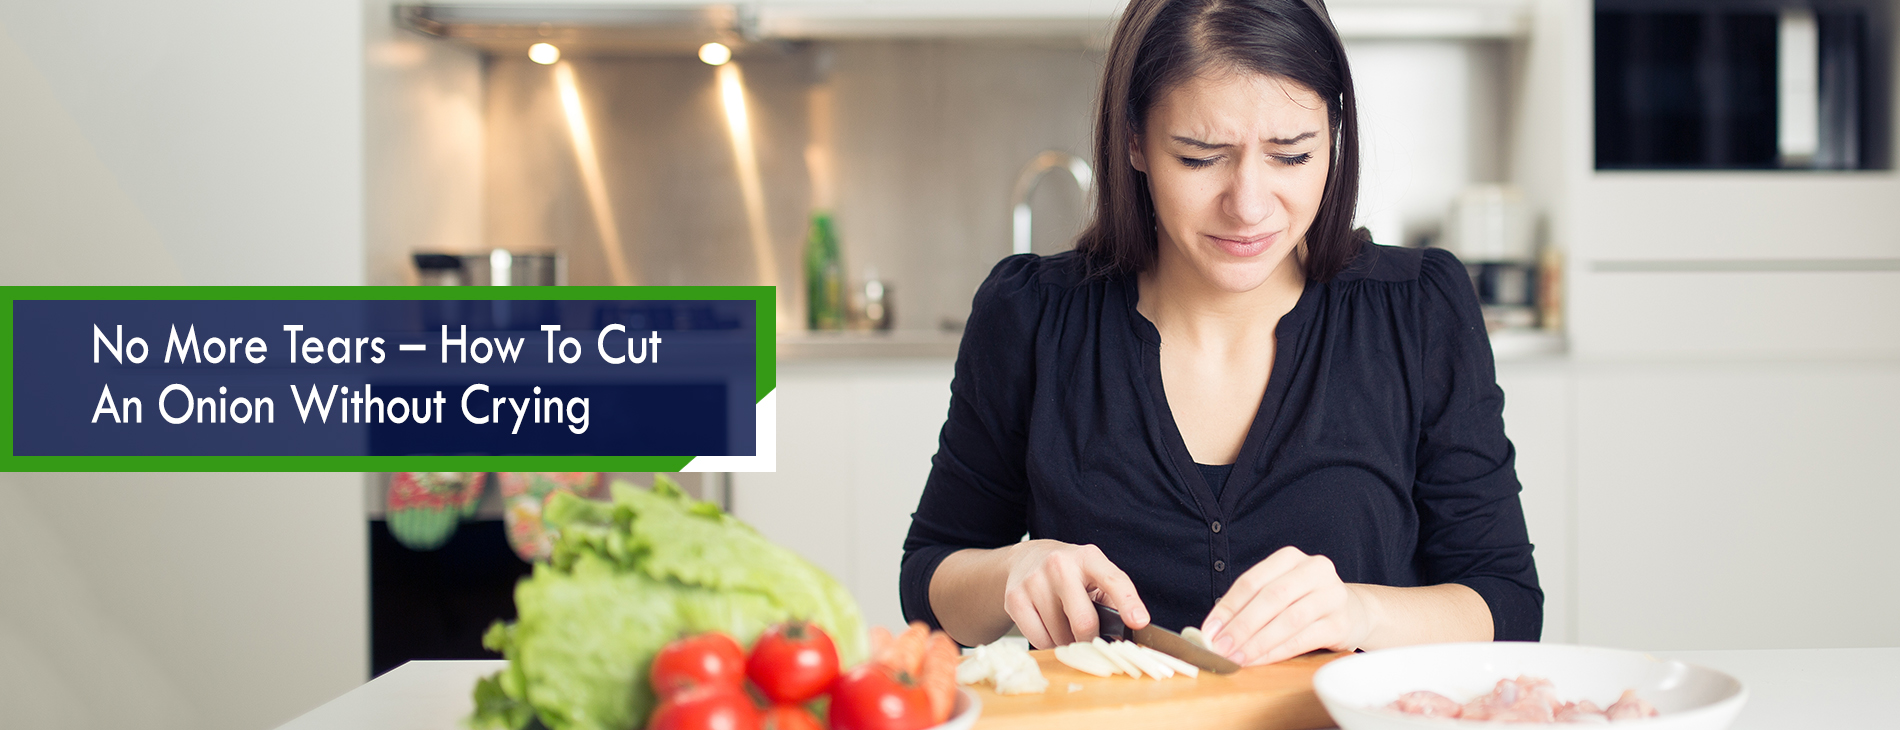 No More Tears – How To Cut An Onion Without Crying